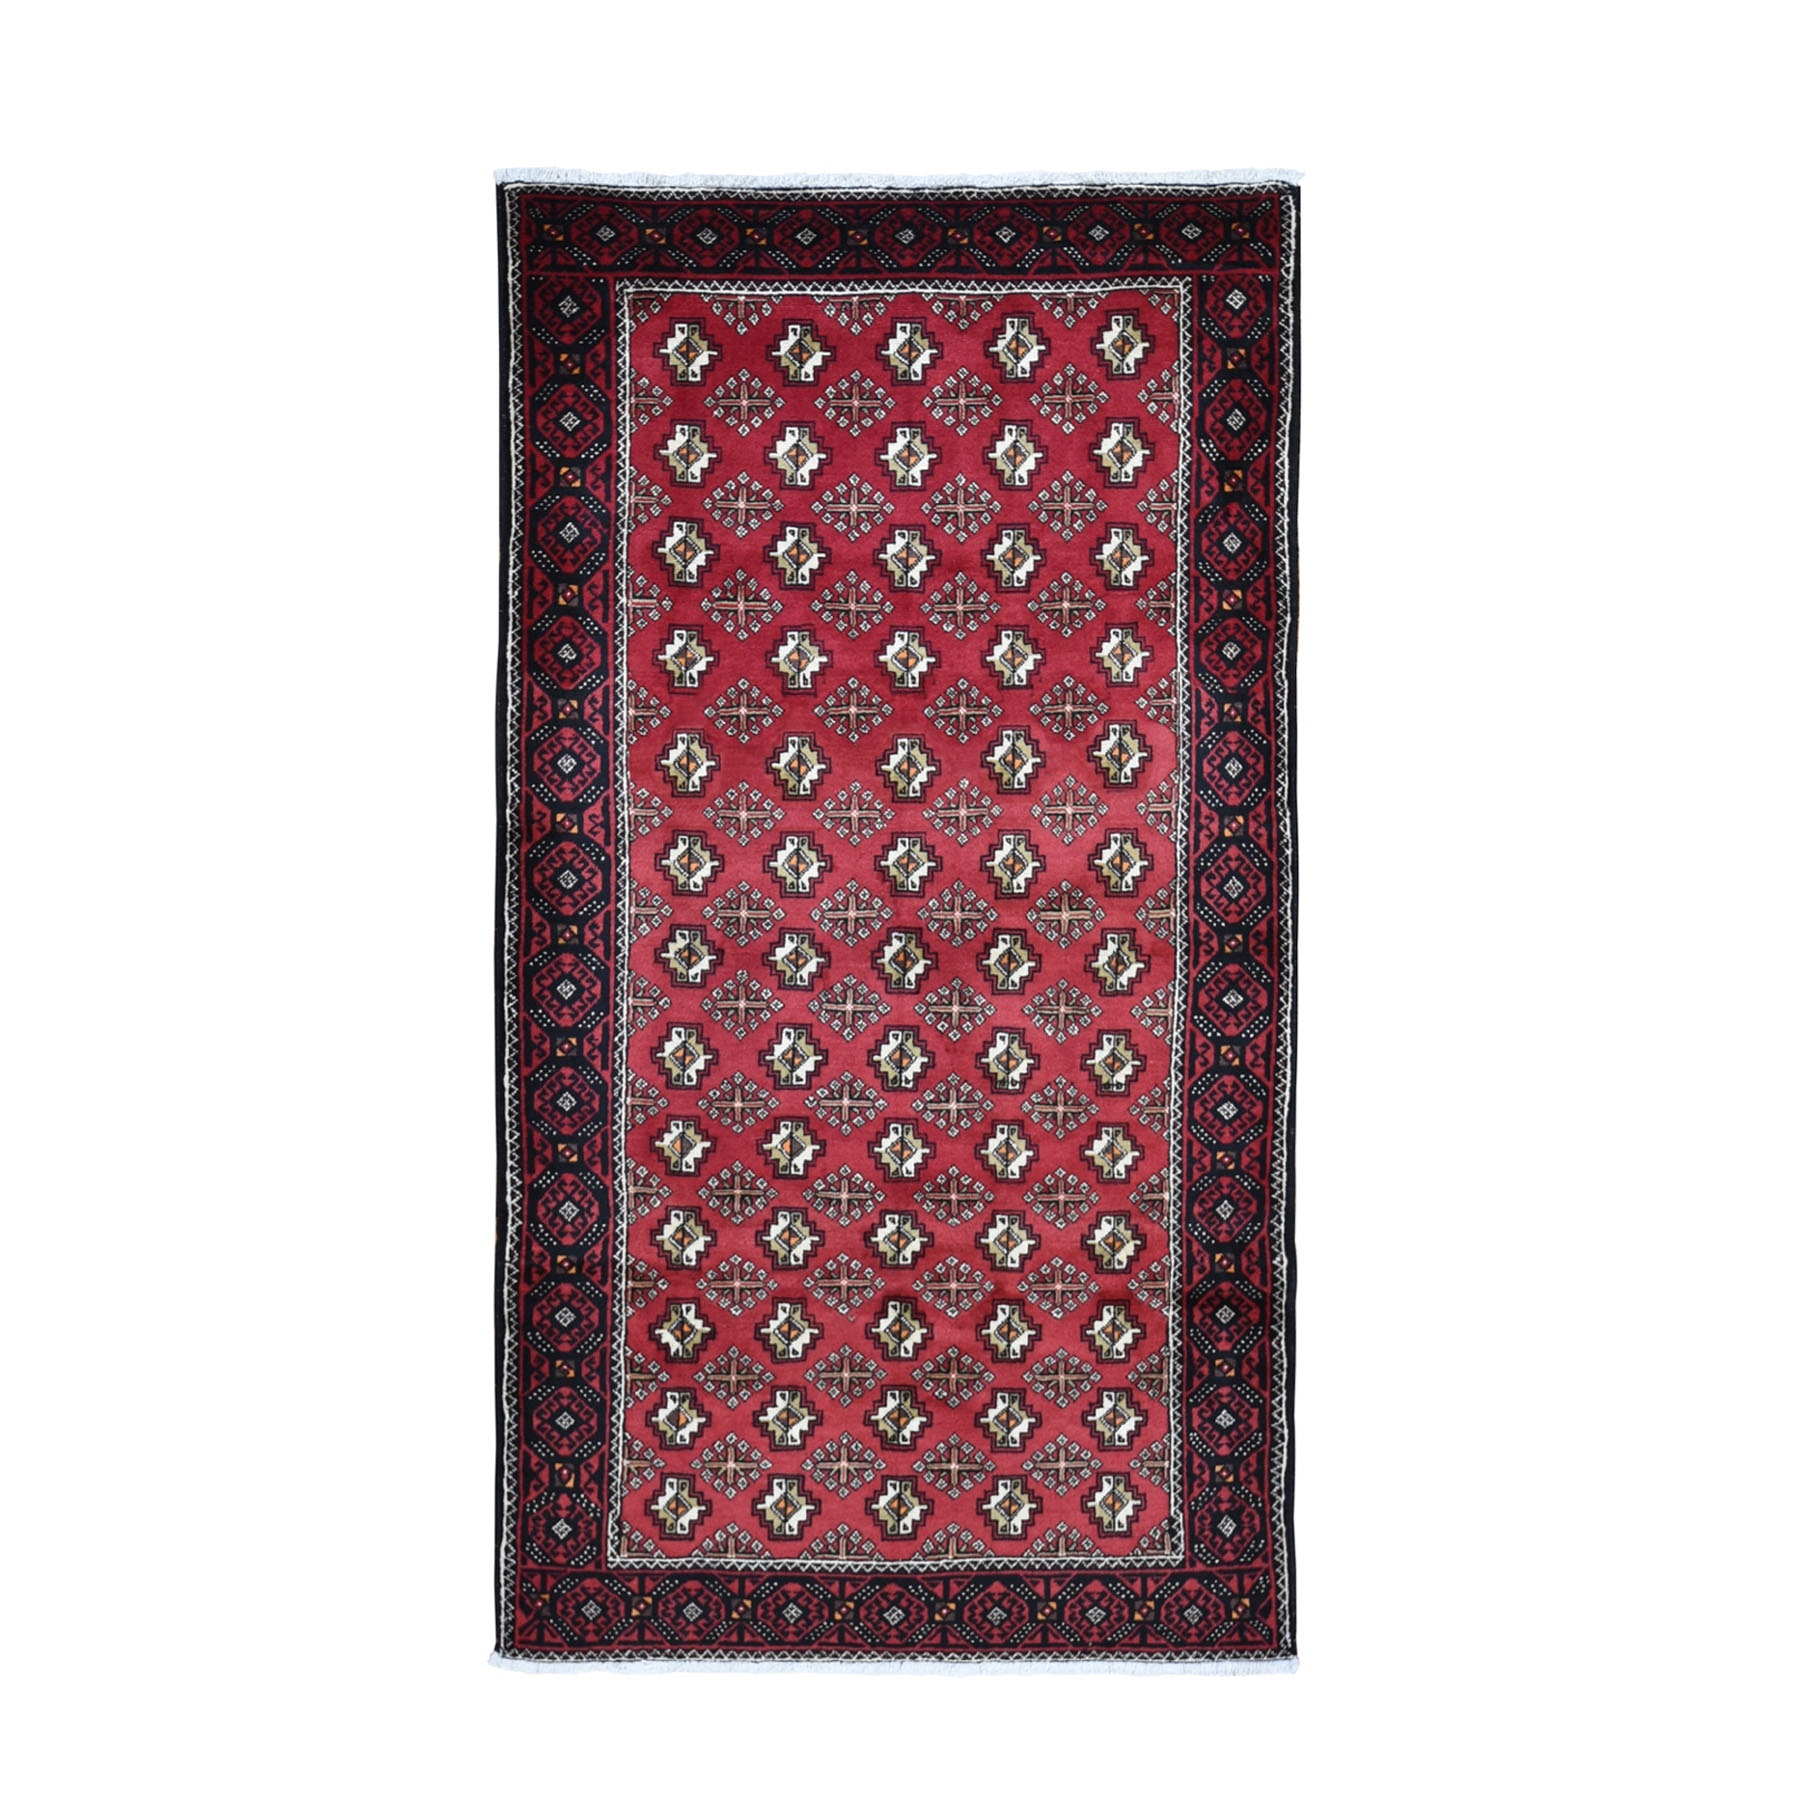 Classic Persian Collection Hand Knotted Red Rug No: 199844